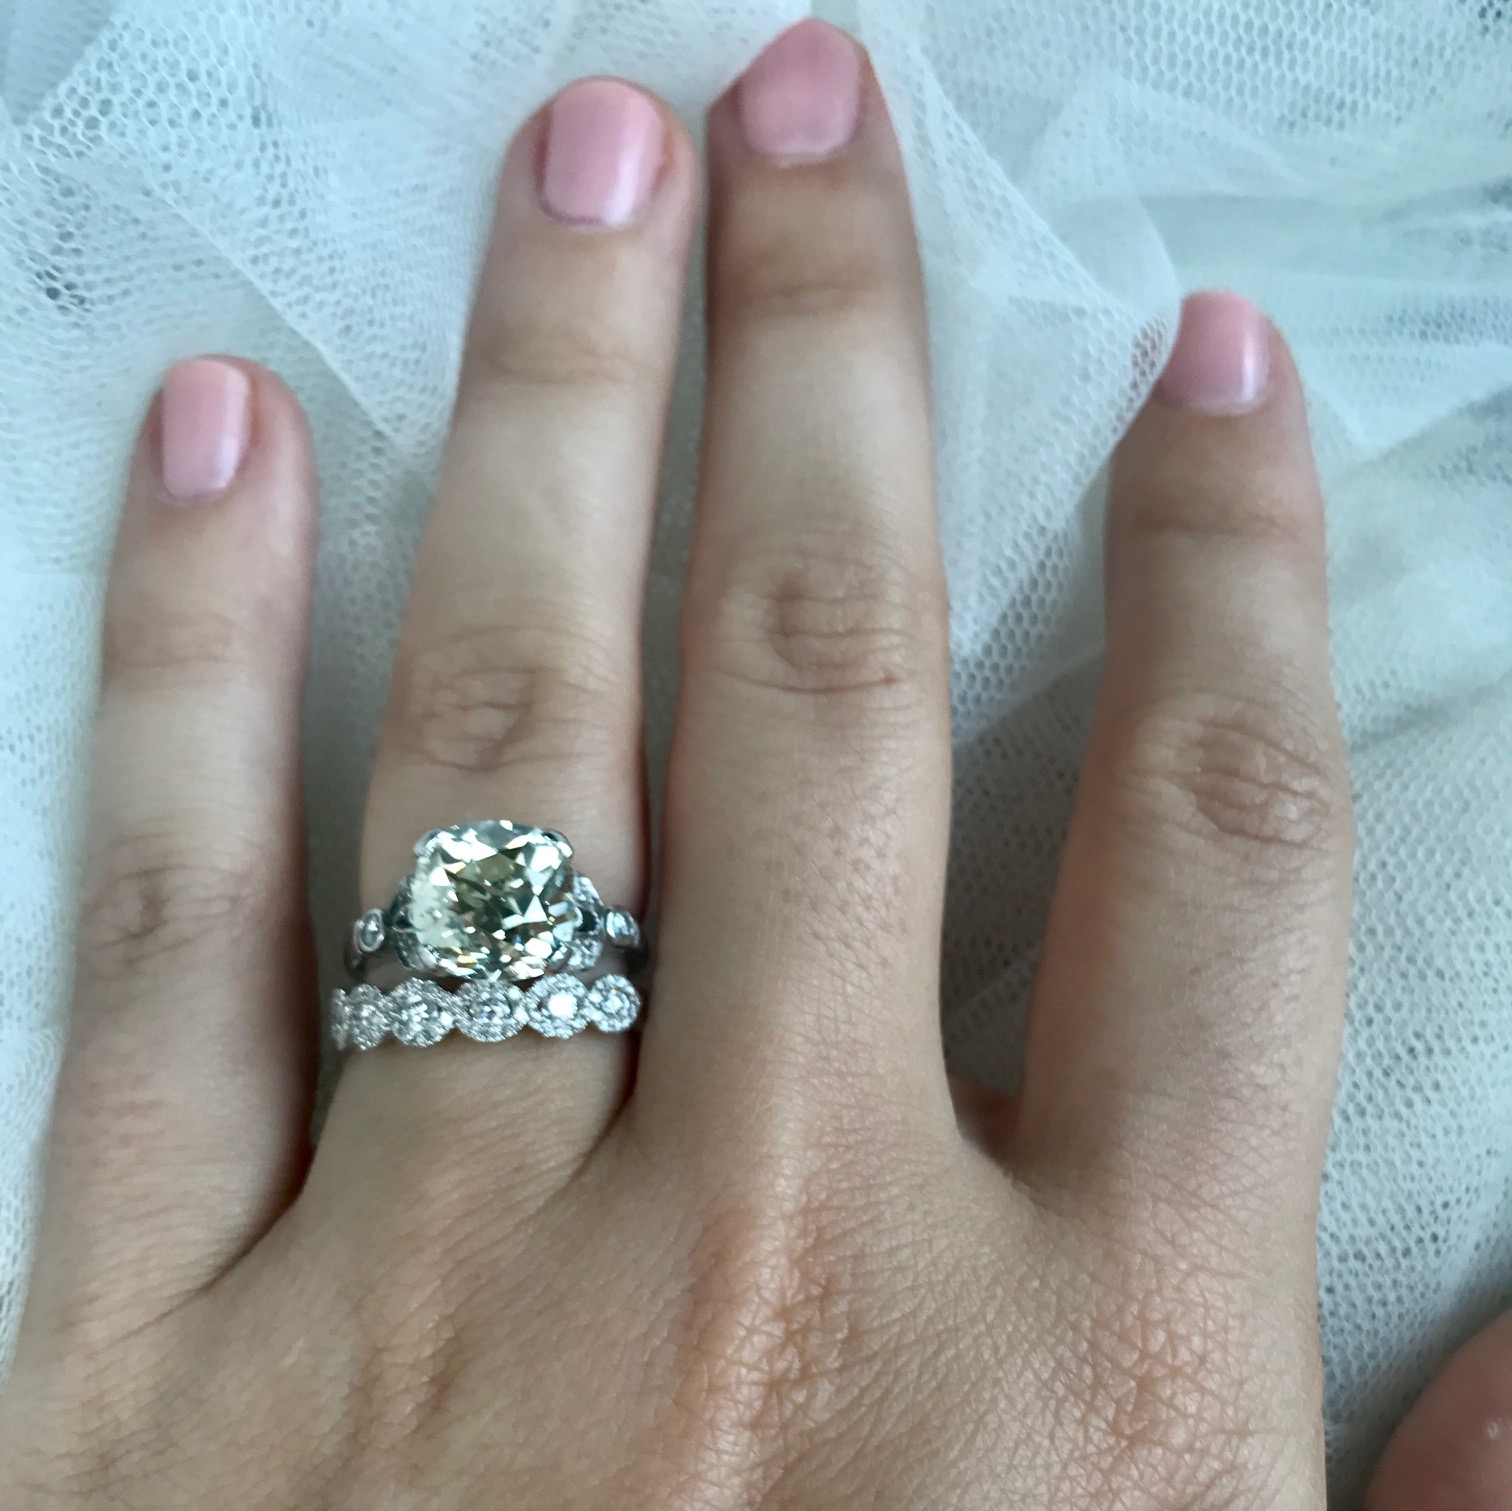 With Grandmother's Ring, I Thee Wed